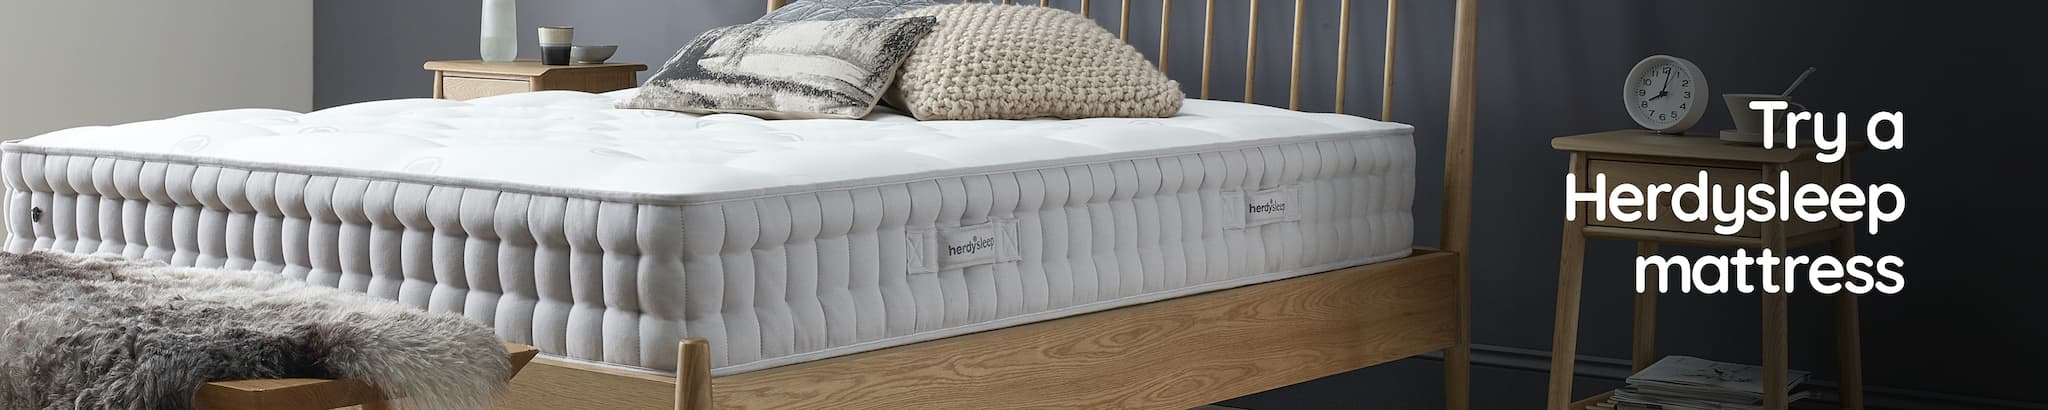 Try a Herdysleep mattress